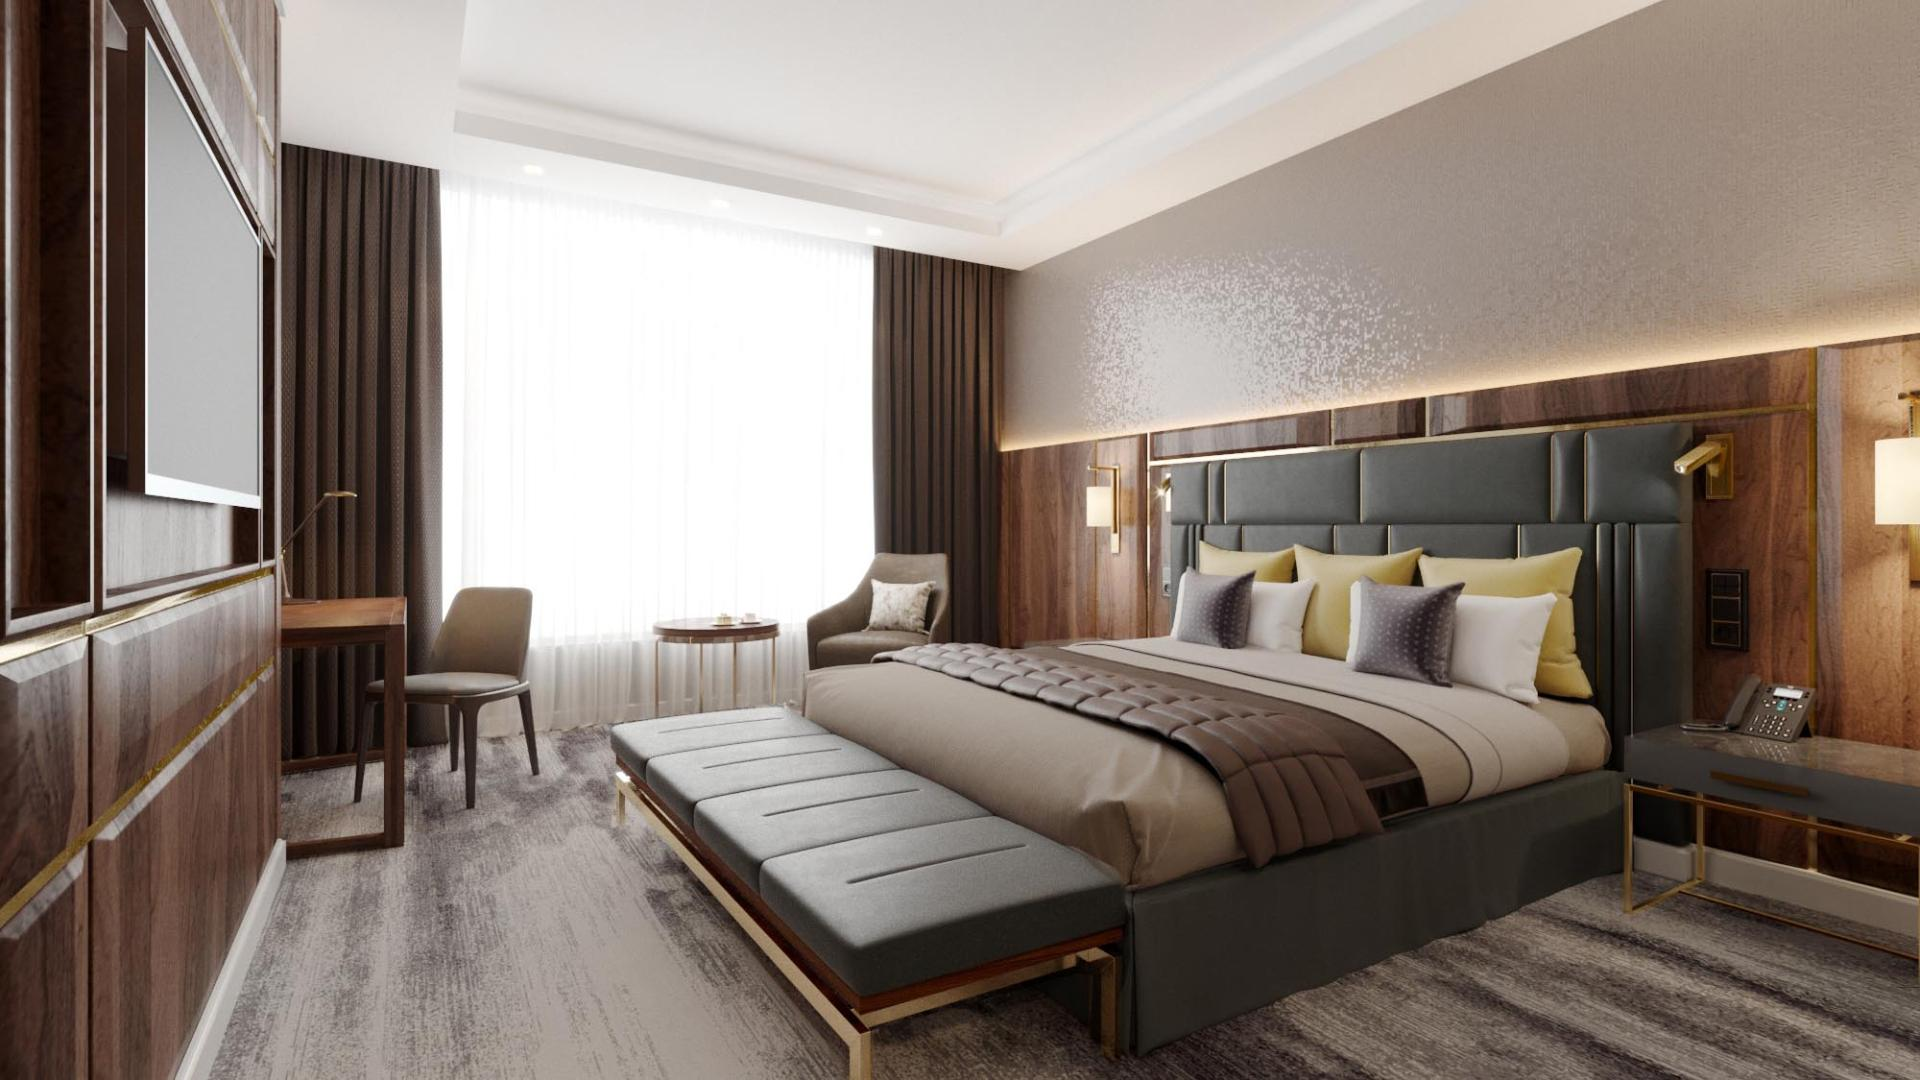 Lotte Hotel Samara - Rooms - Standard - Deluxe Room